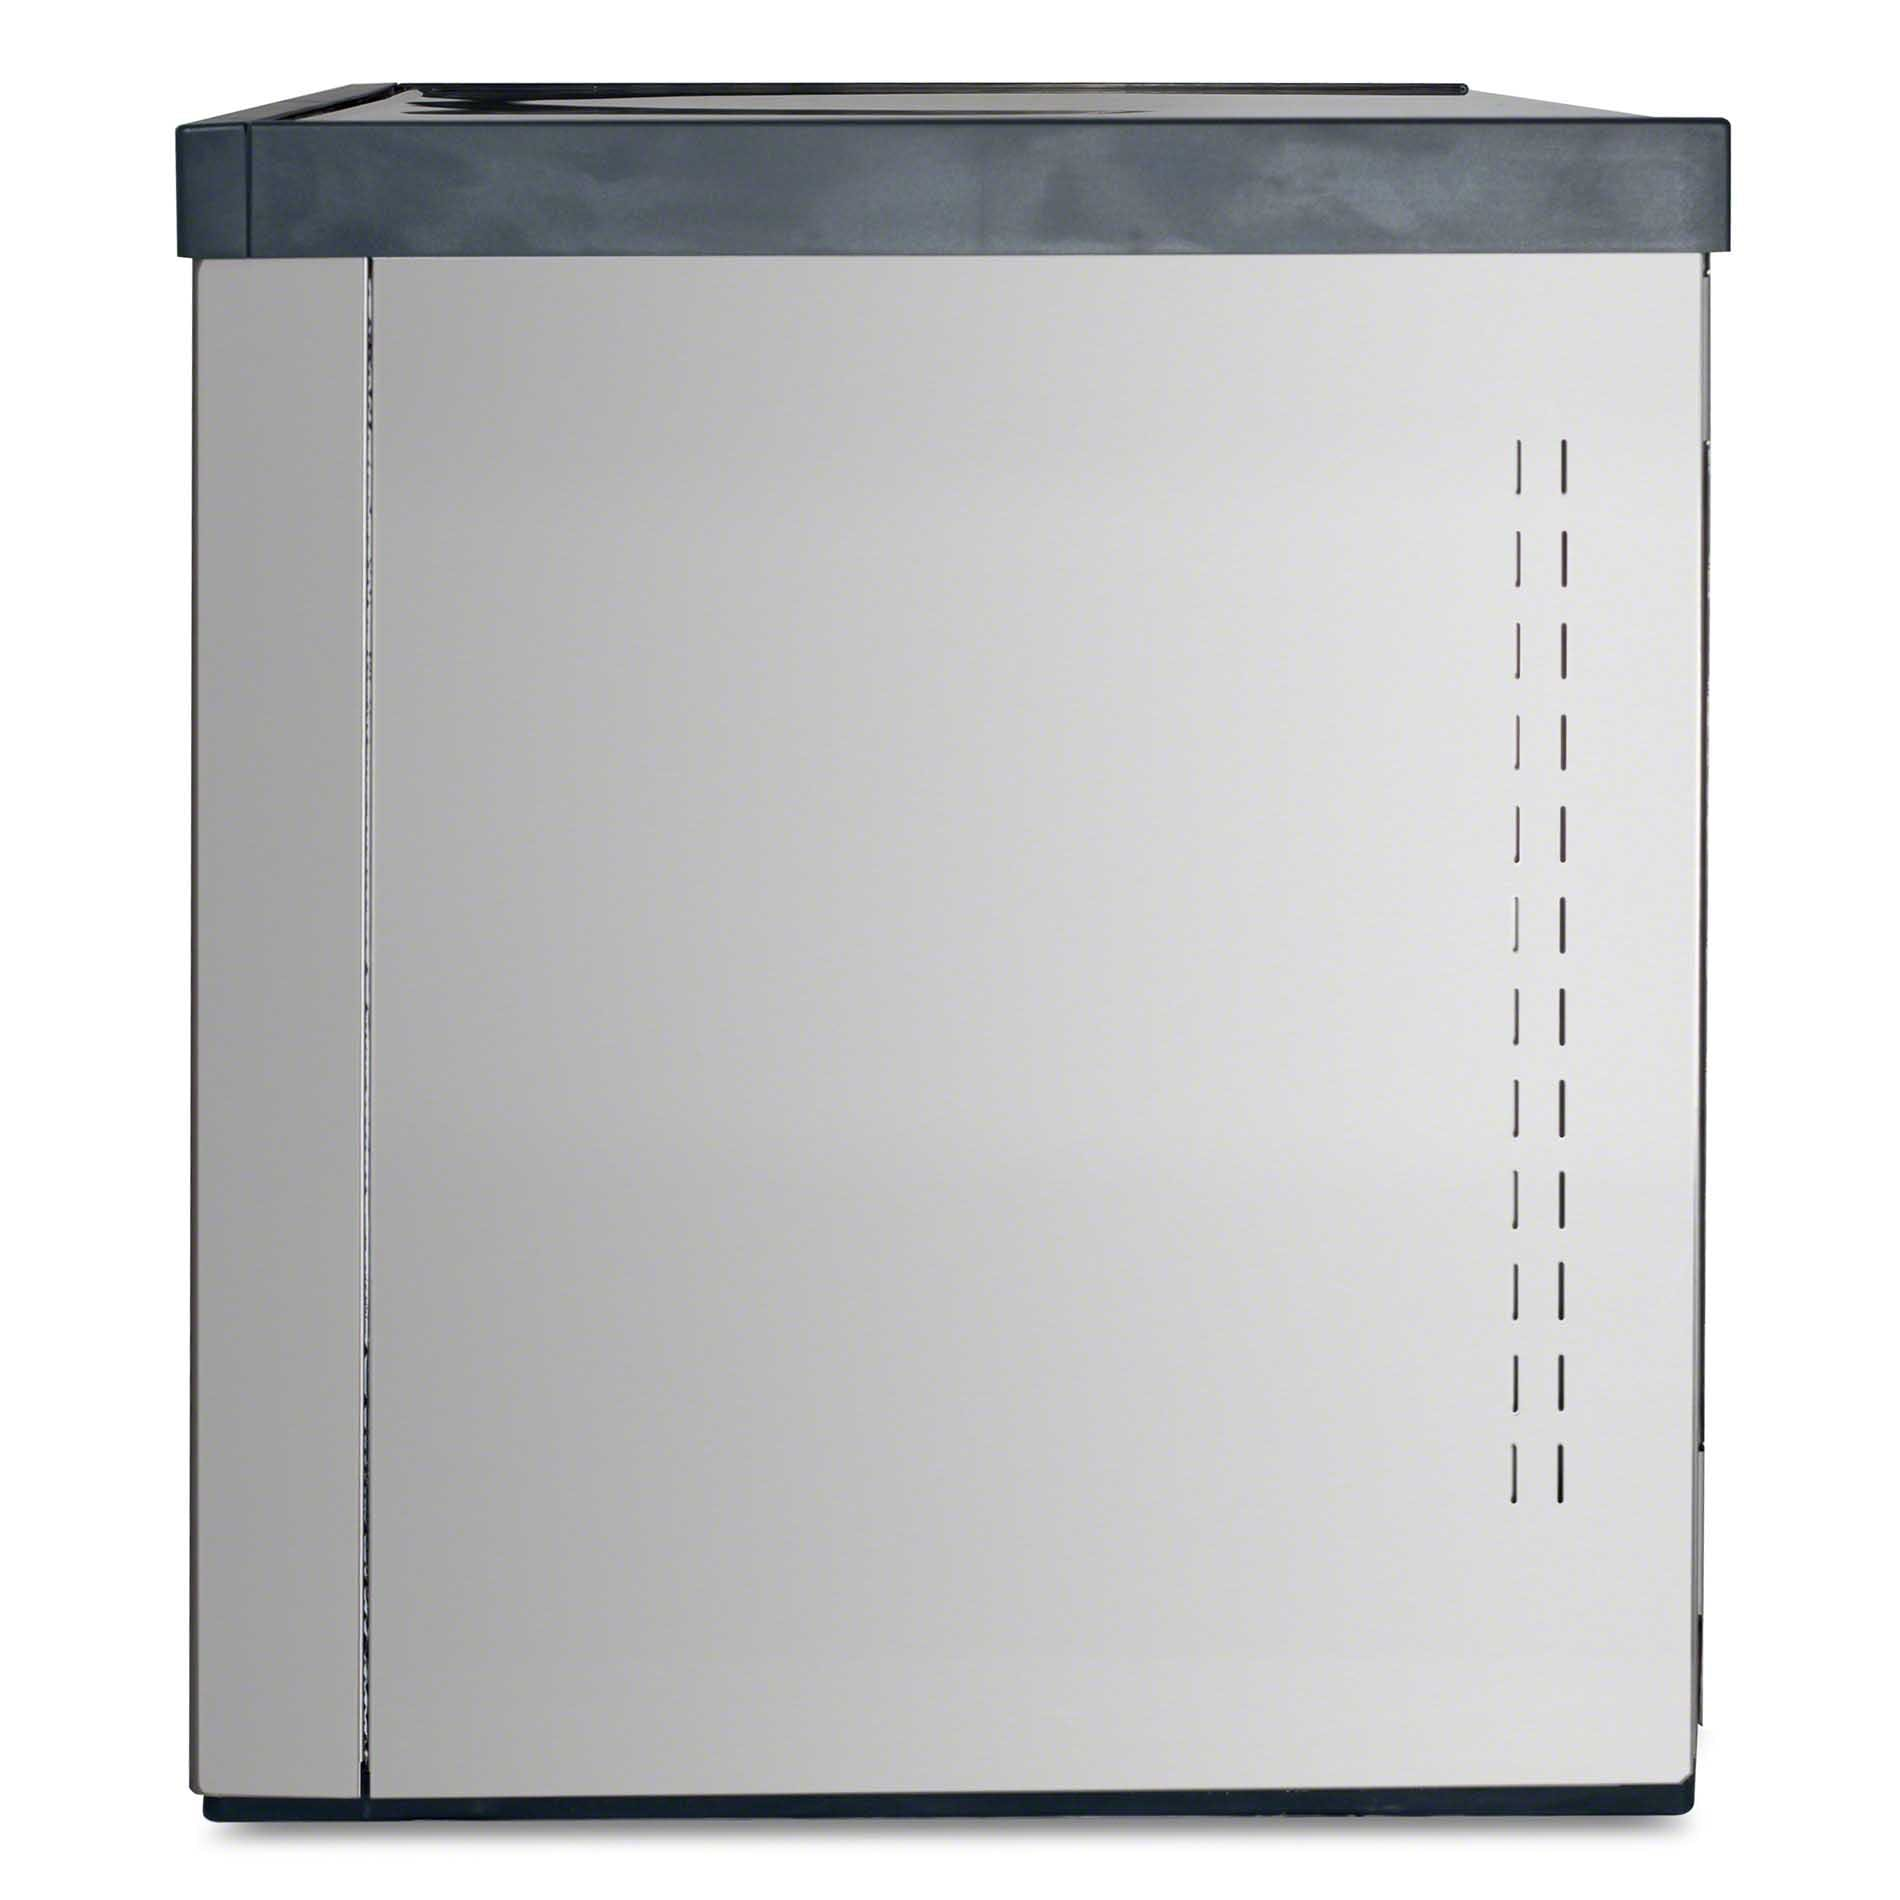 Scotsman - C1030SA-32A 1077 lb Half Size Cube Ice Machine - Prodigy Series - sold by Food Service Warehouse